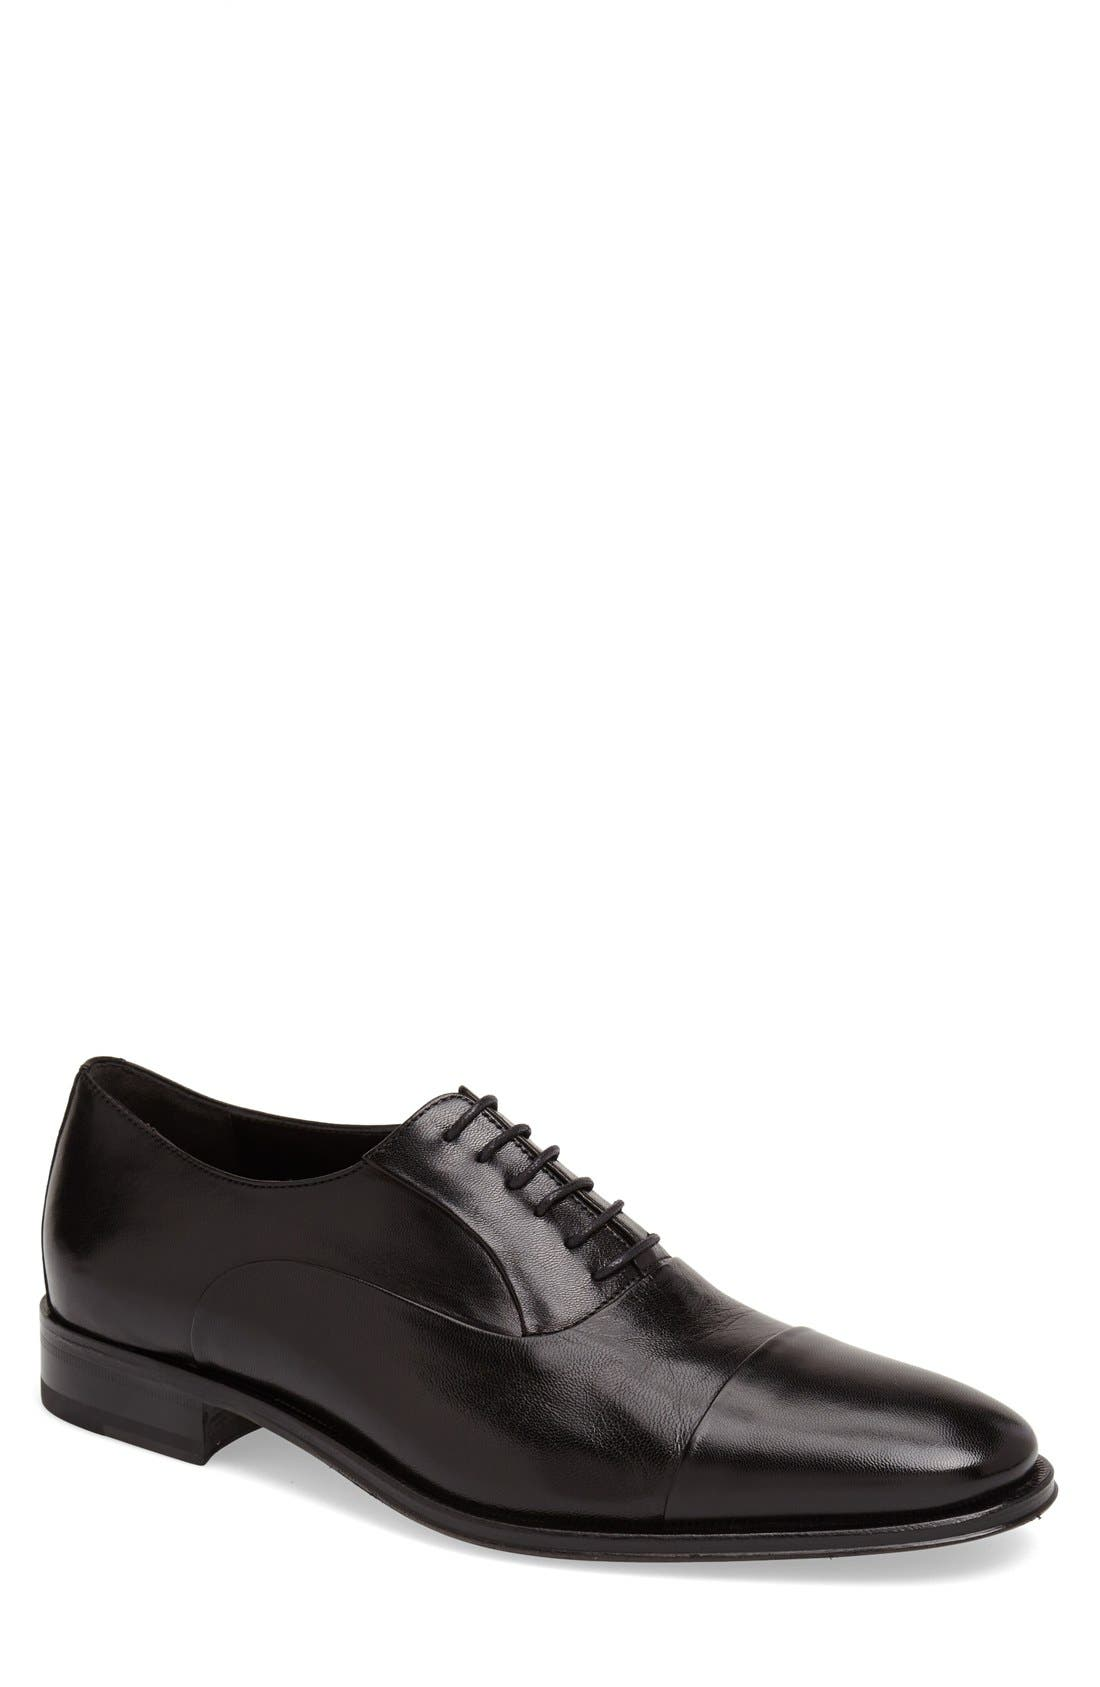 'Maioco' Oxford,                             Main thumbnail 1, color,                             Black Calf